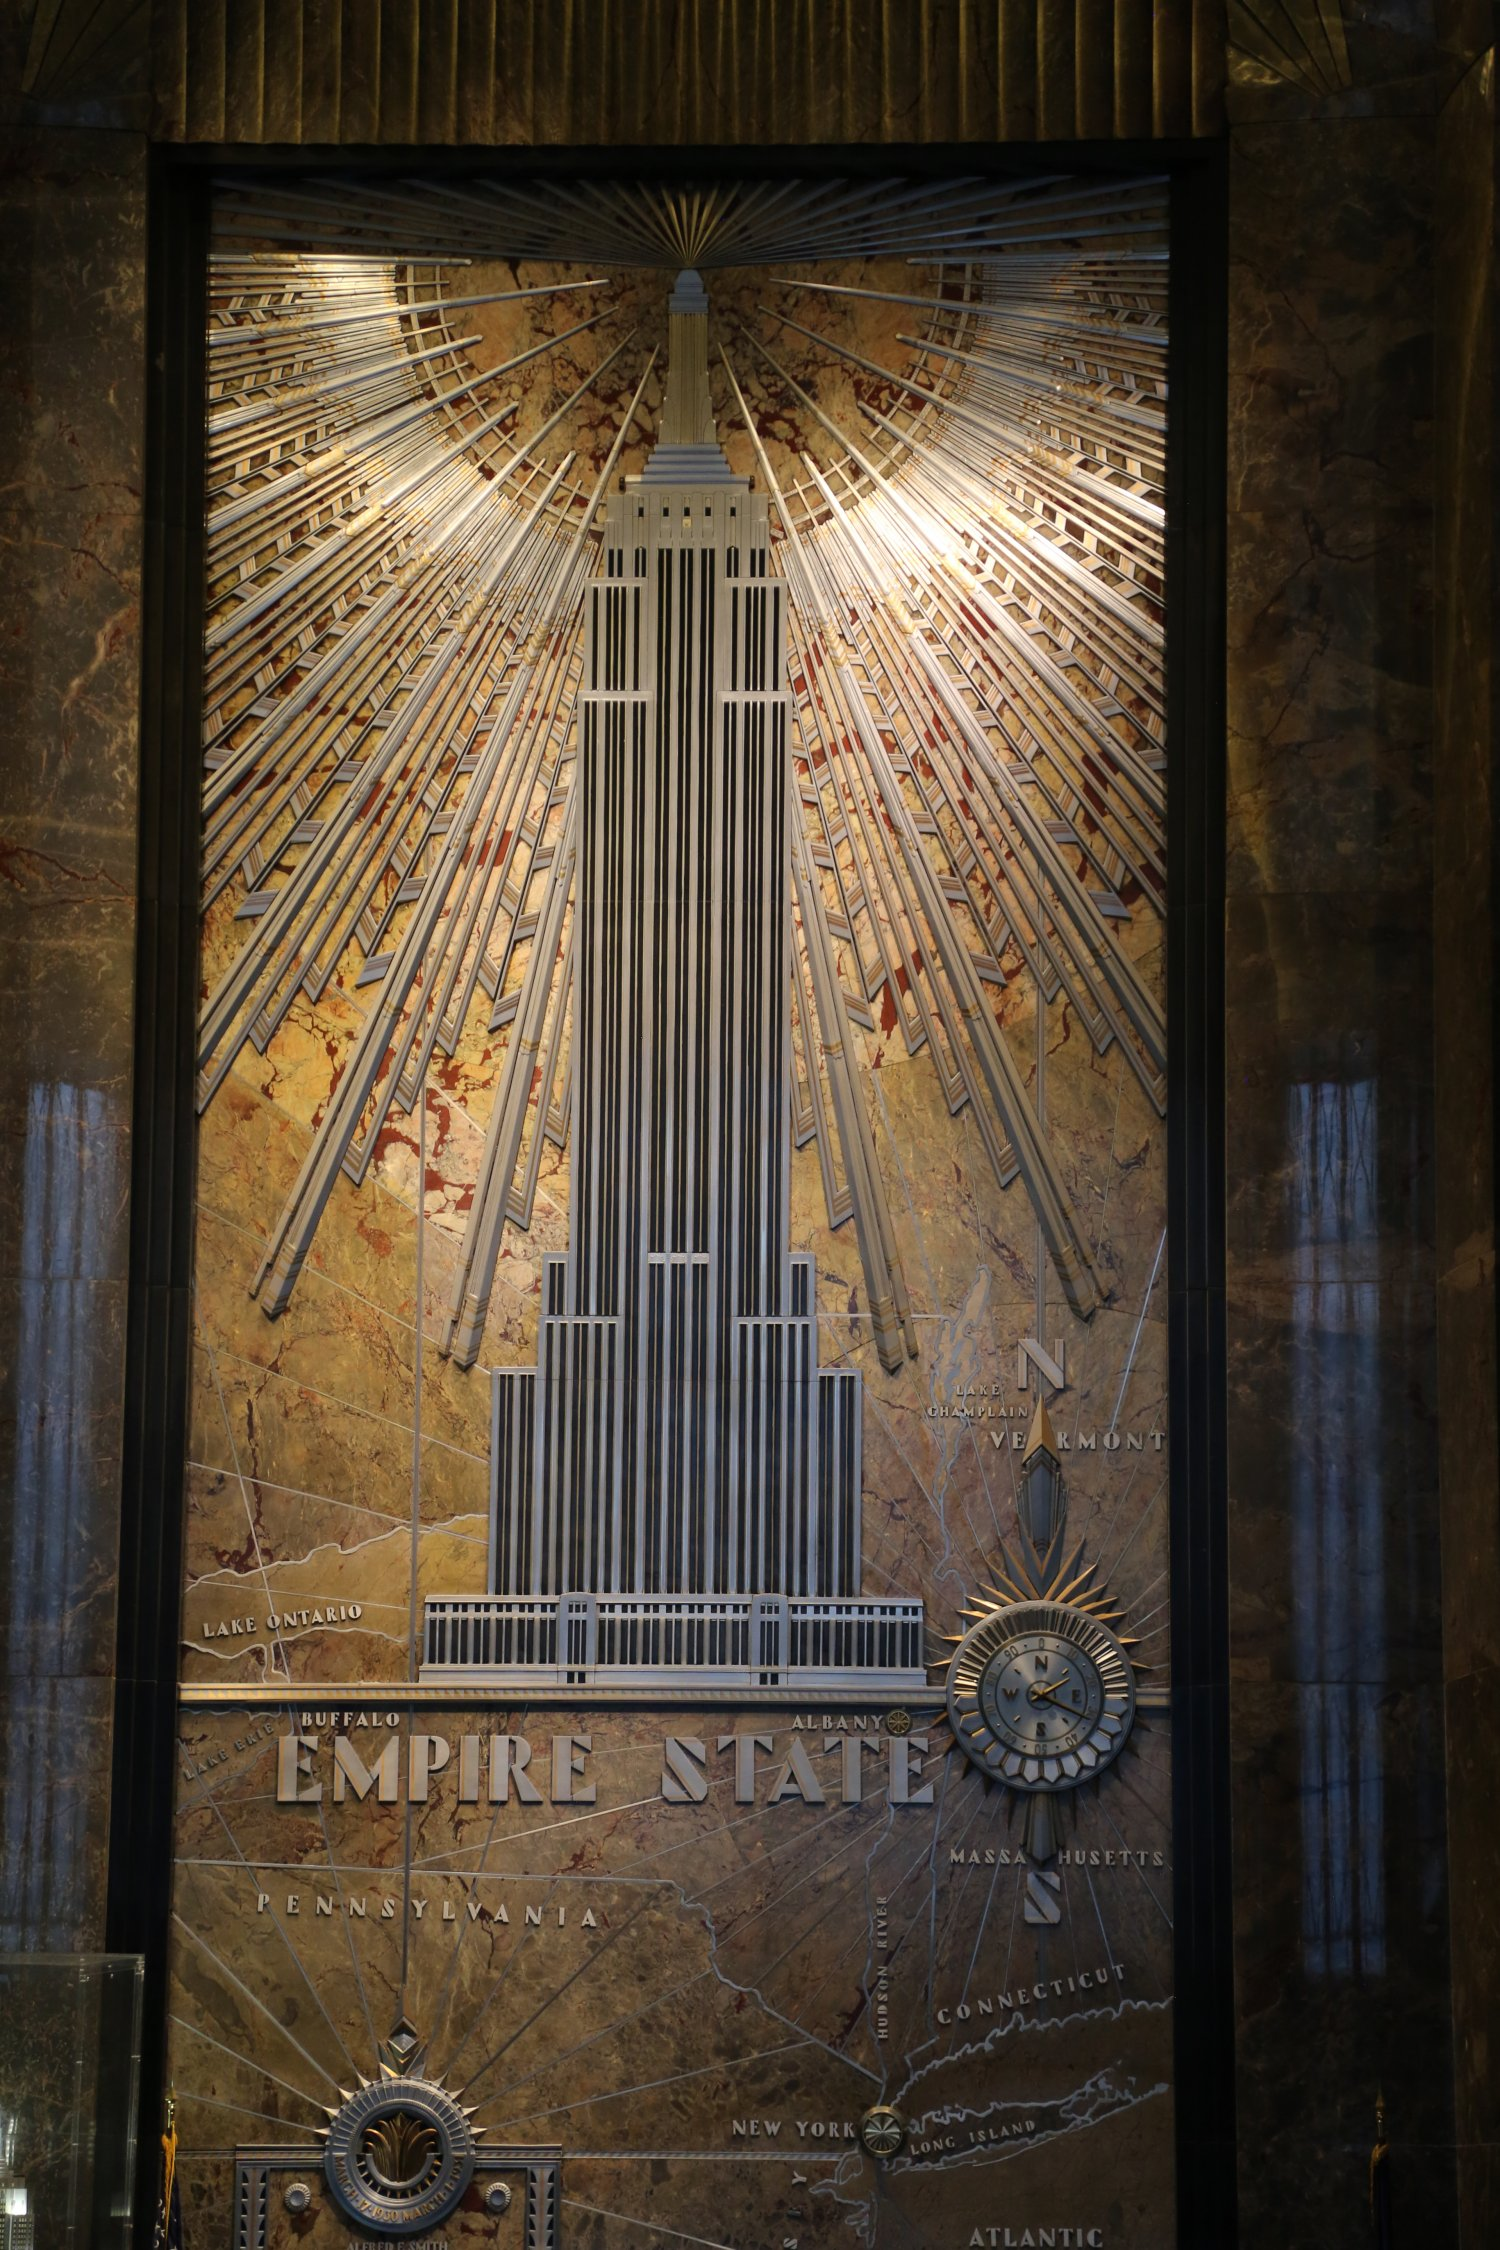 Empire-State-Building-New-York (3)